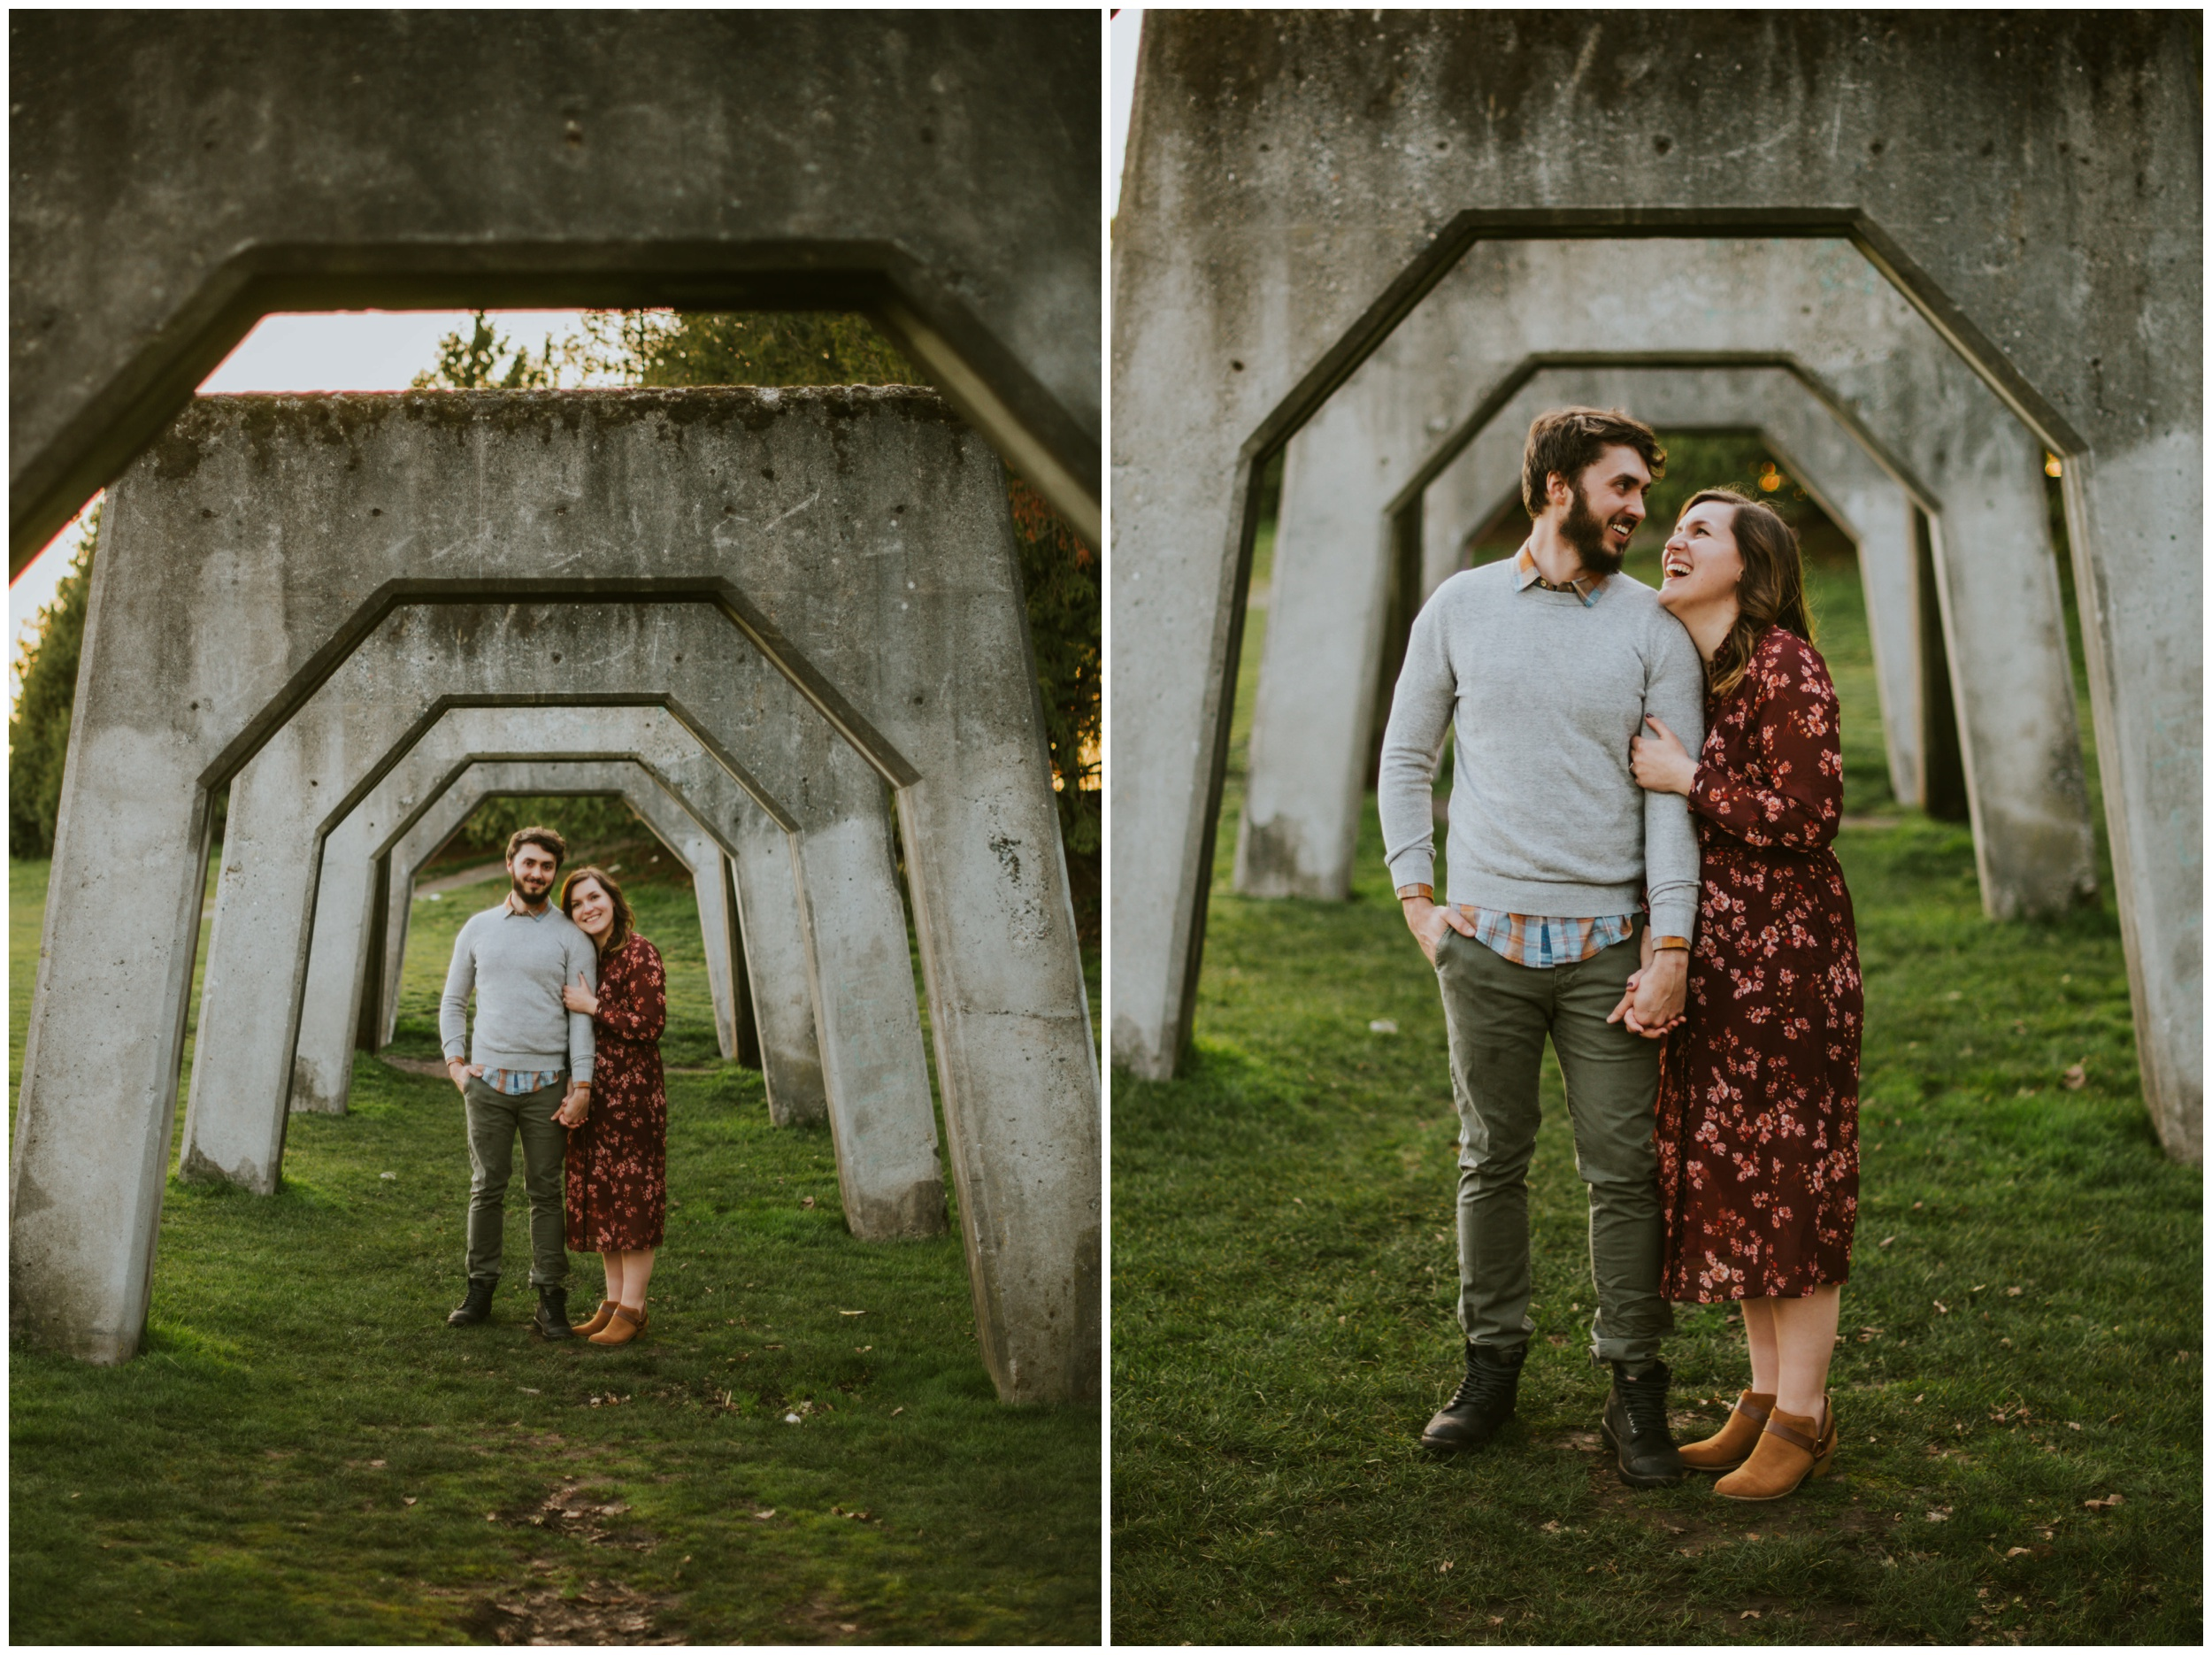 Engagement Photos in the arches at Gas Works Park | Seattle Engagement Photographer www.riversandroadsphotography.com